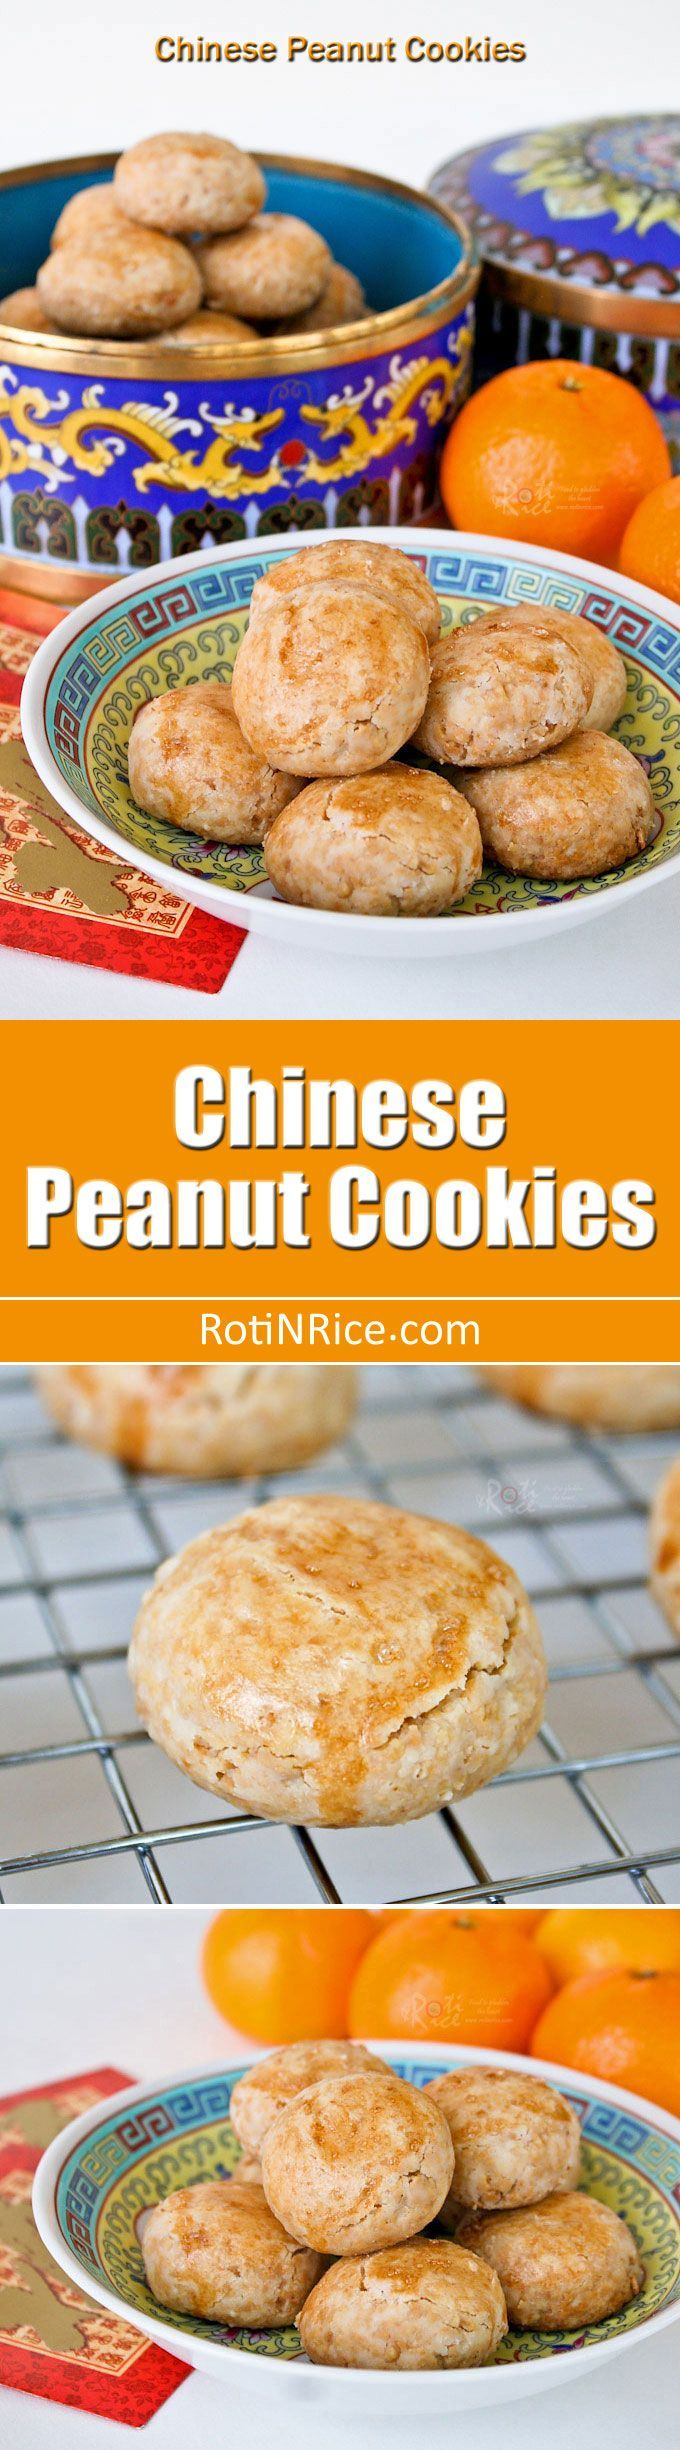 Melt-in-the-mouth gluten free Chinese Peanut Cookies using freshly roasted peanuts and rice flour. They are very easy to make and a treat for sure! | http://RotiNRice.com